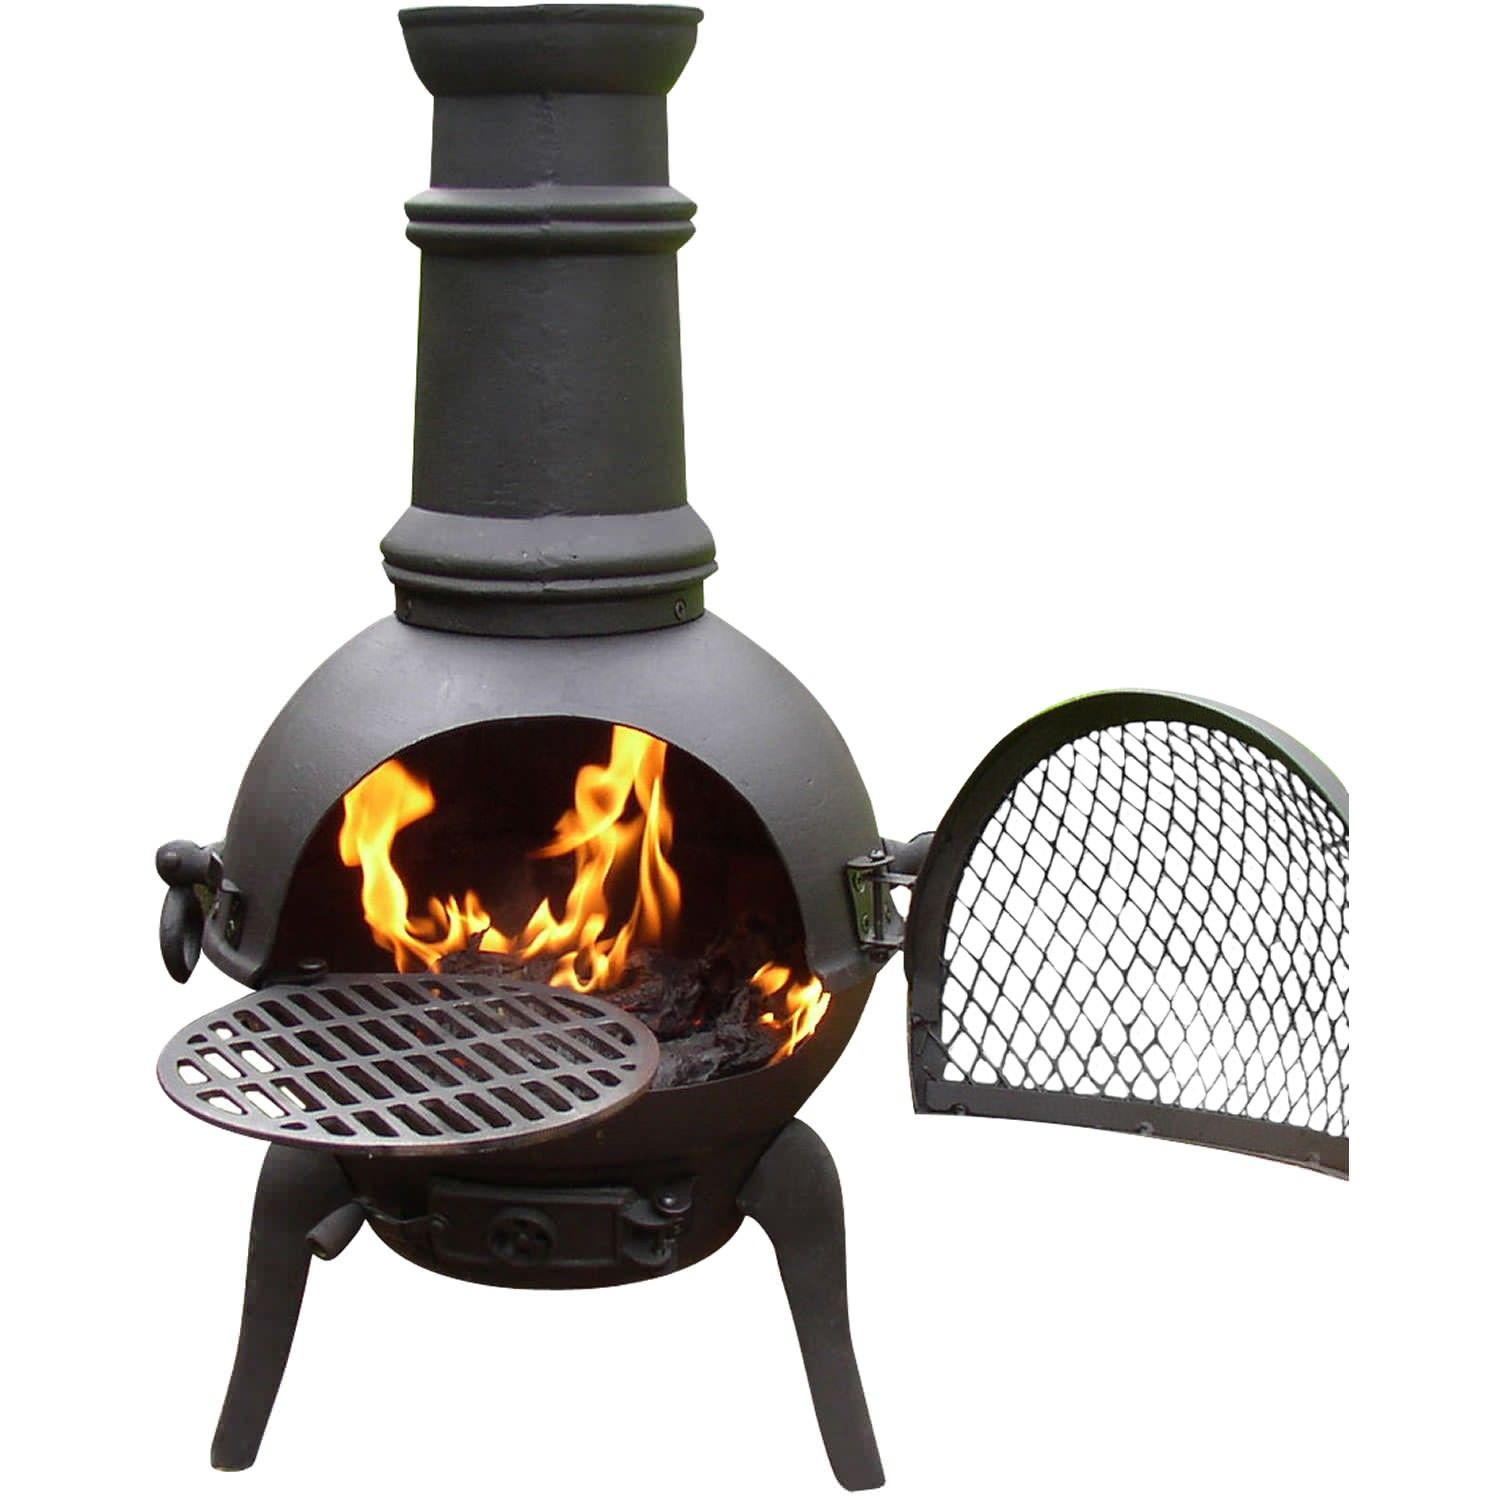 Great Cast Iron Chiminea Small Bronze In Unique Design For Patio Heater Ideas